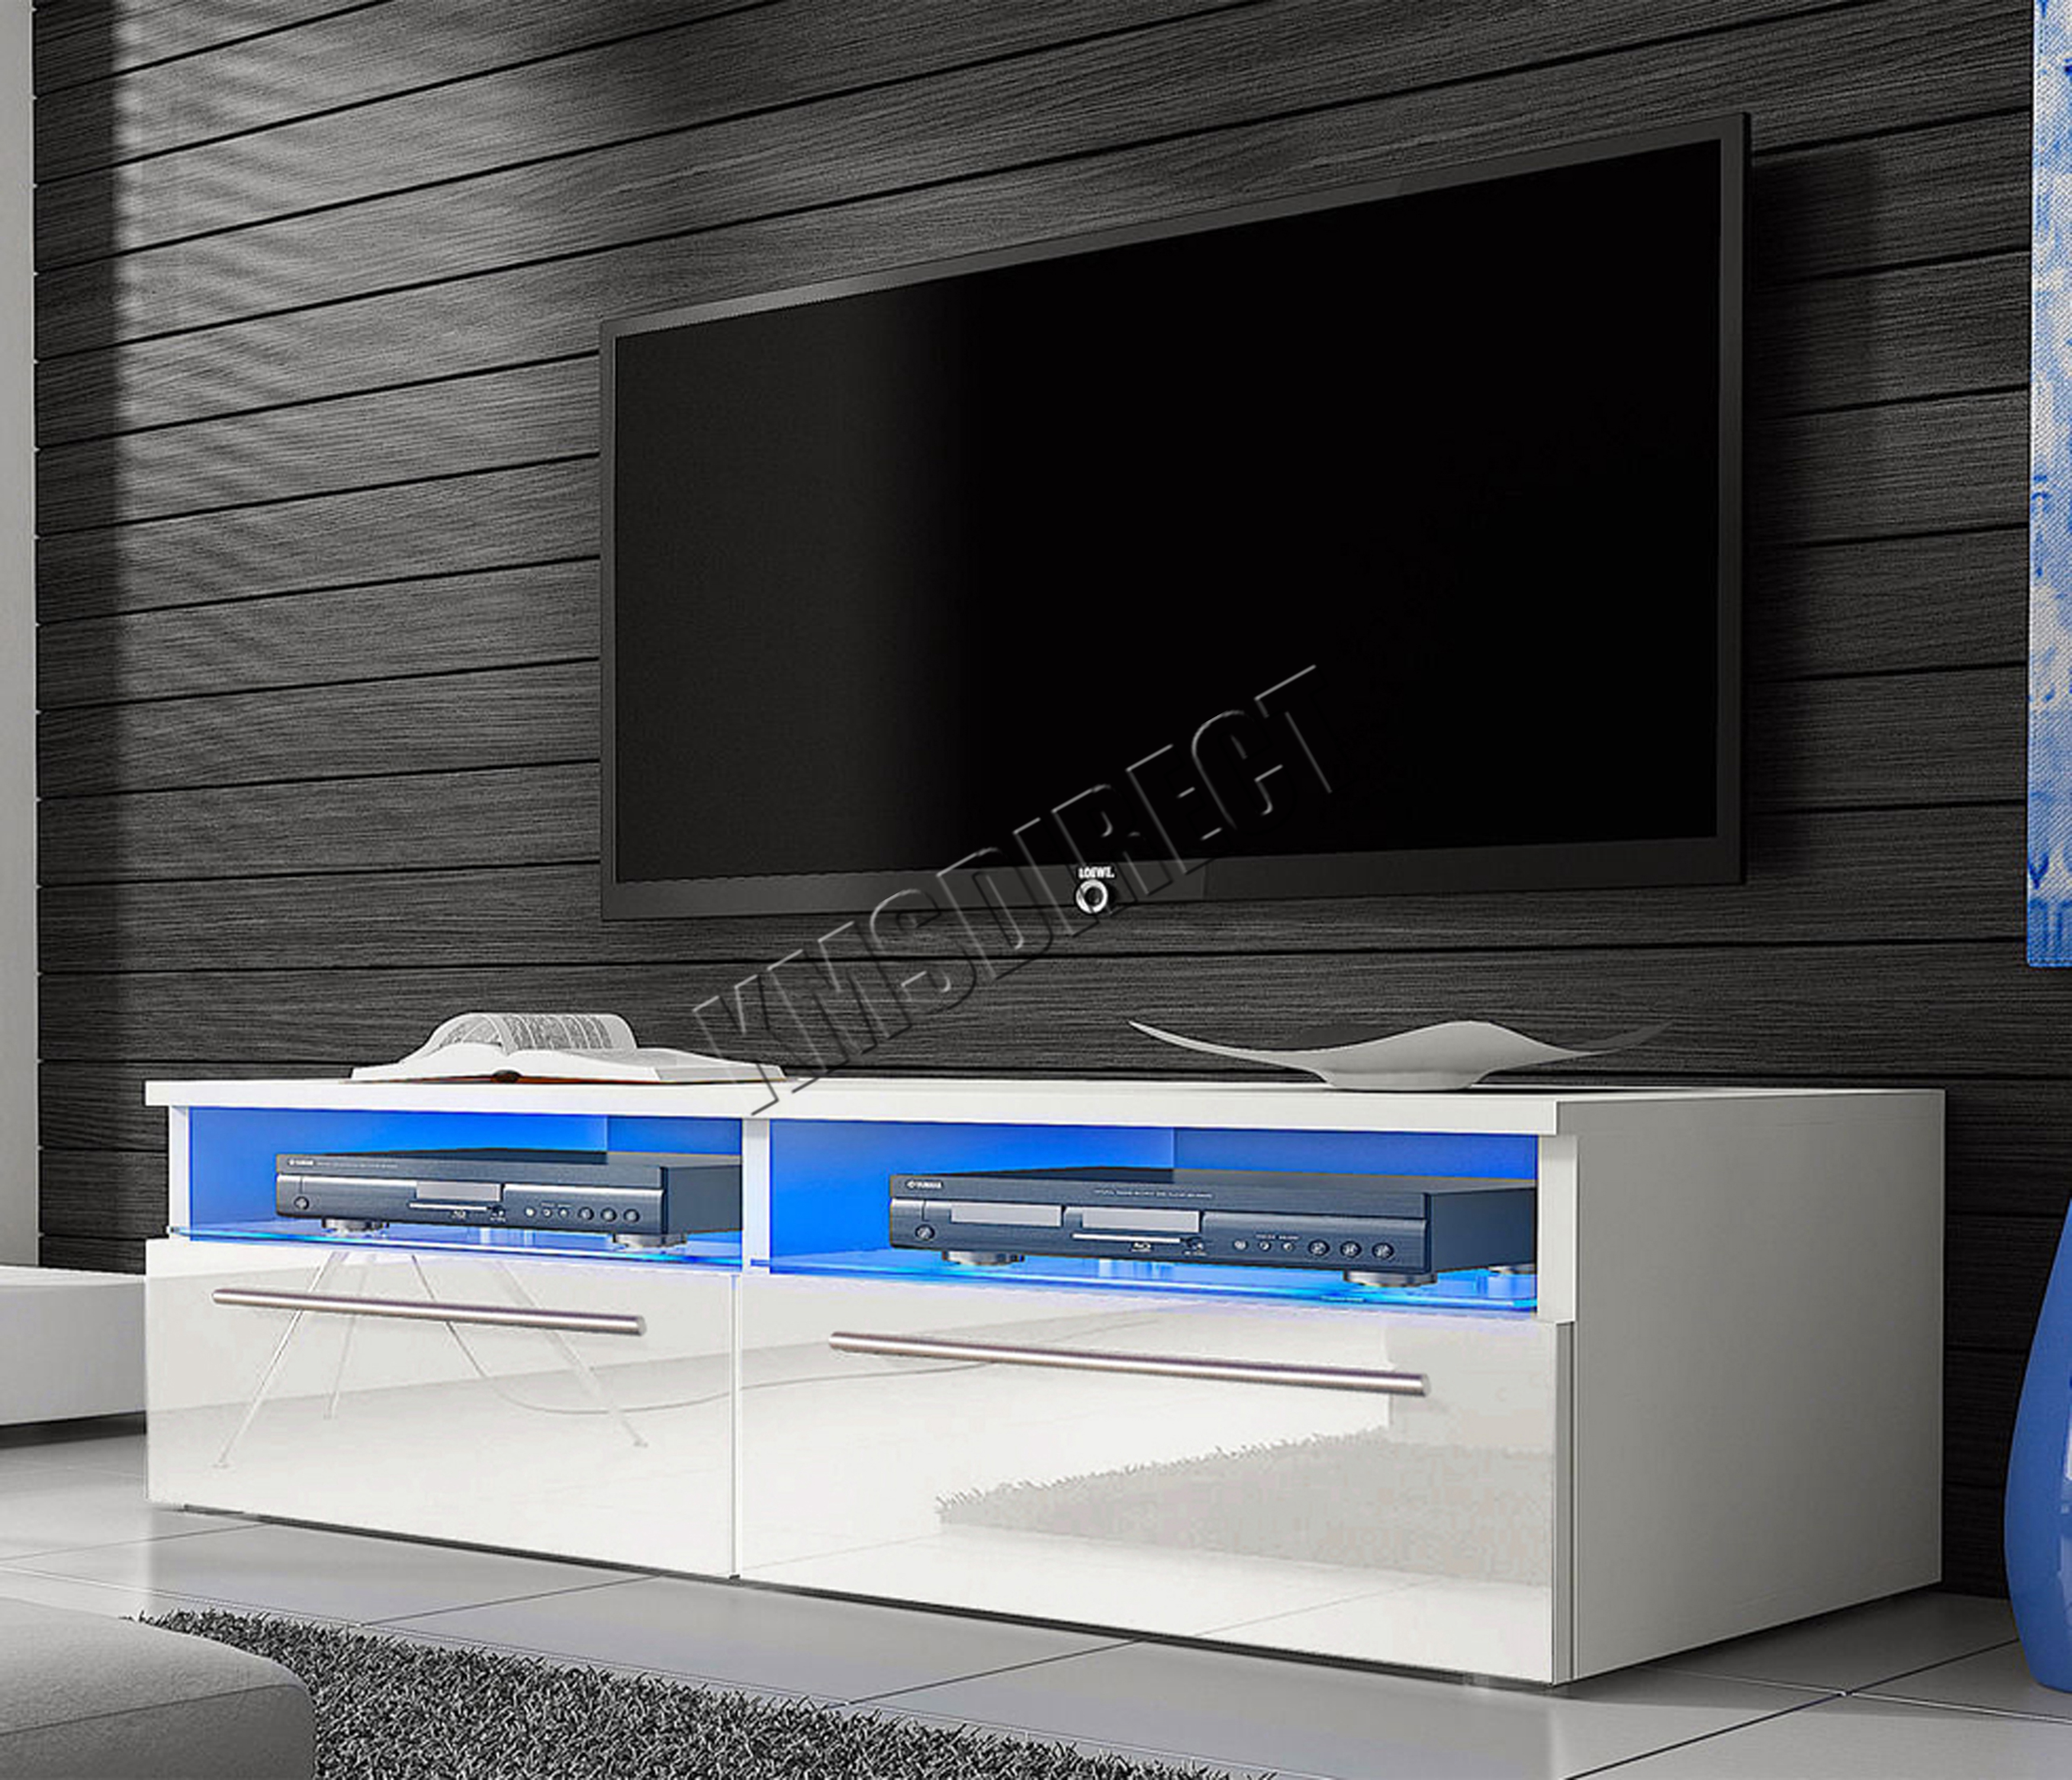 Sentinel Westwood Modern Led Tv Unit Stand Cabinet High Gloss Doors Matte Tvc04